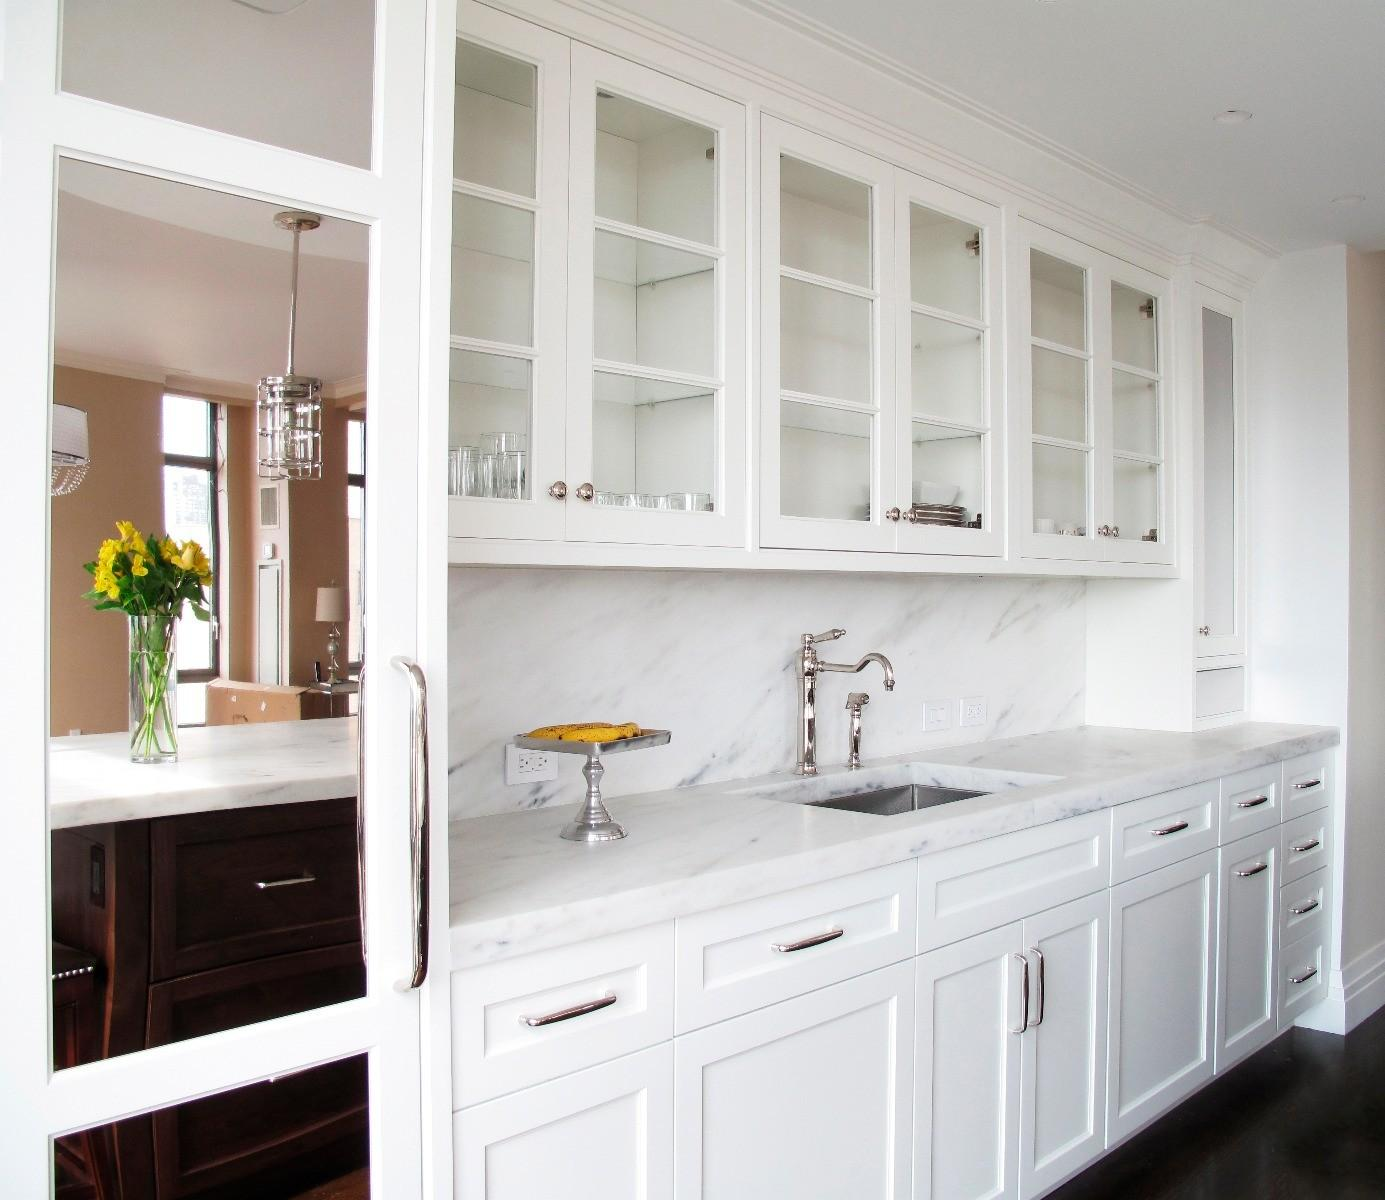 White Cabinets With Brown Glaze: Uptown White Kitchen Cabinets Album Gallery